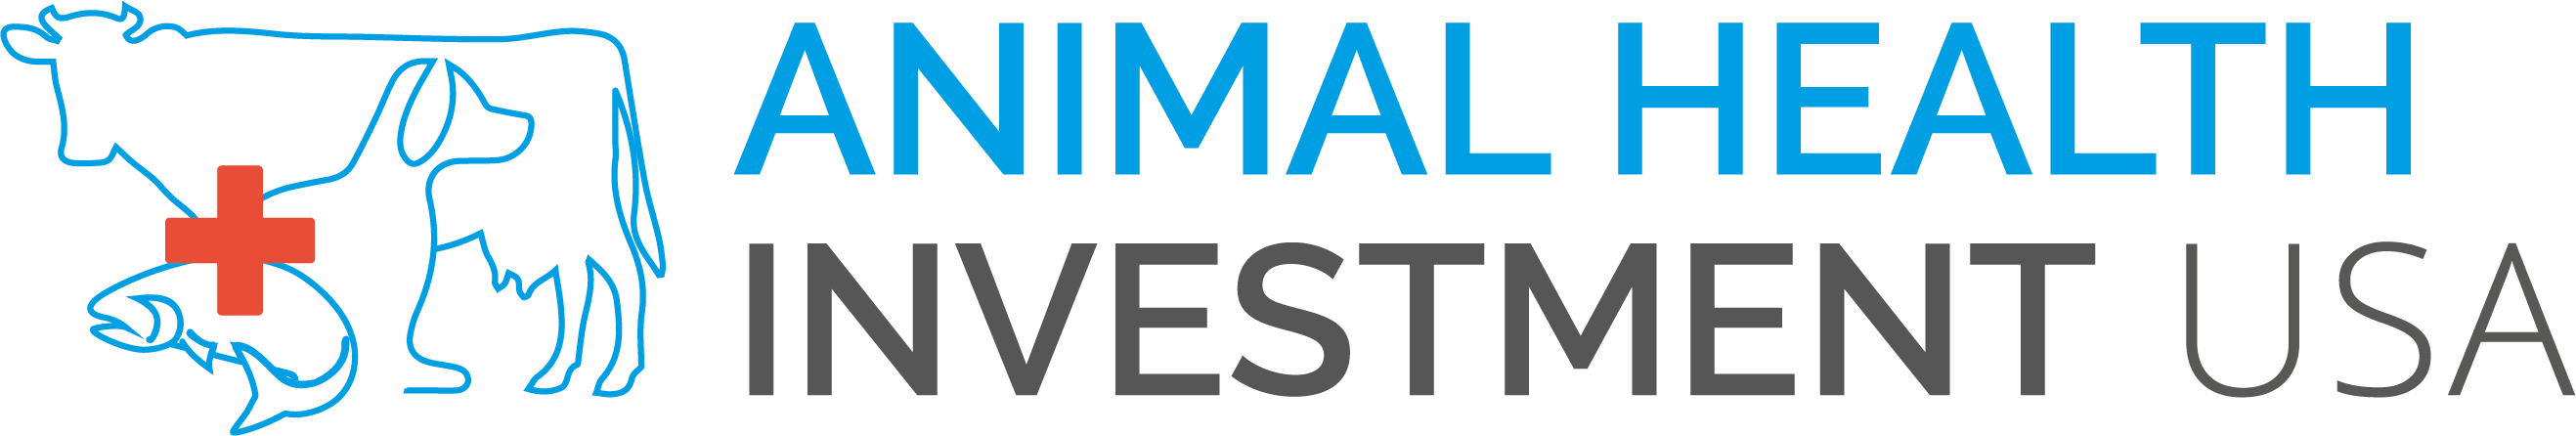 Animal Health Investment USA